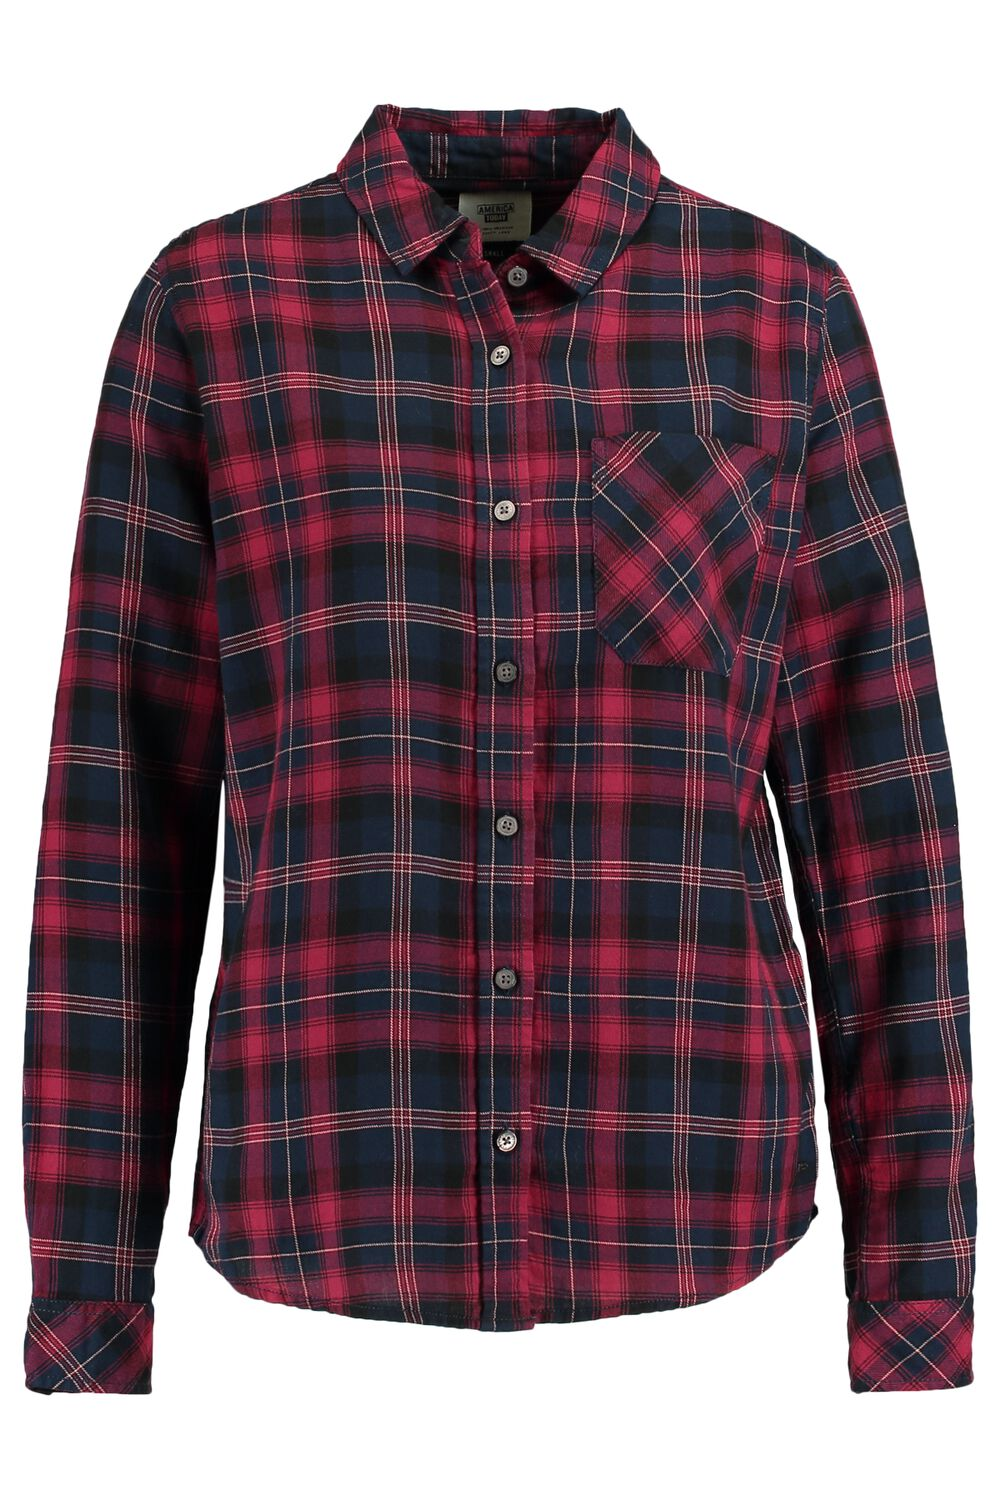 America Today Dames Blouse Britt Rood